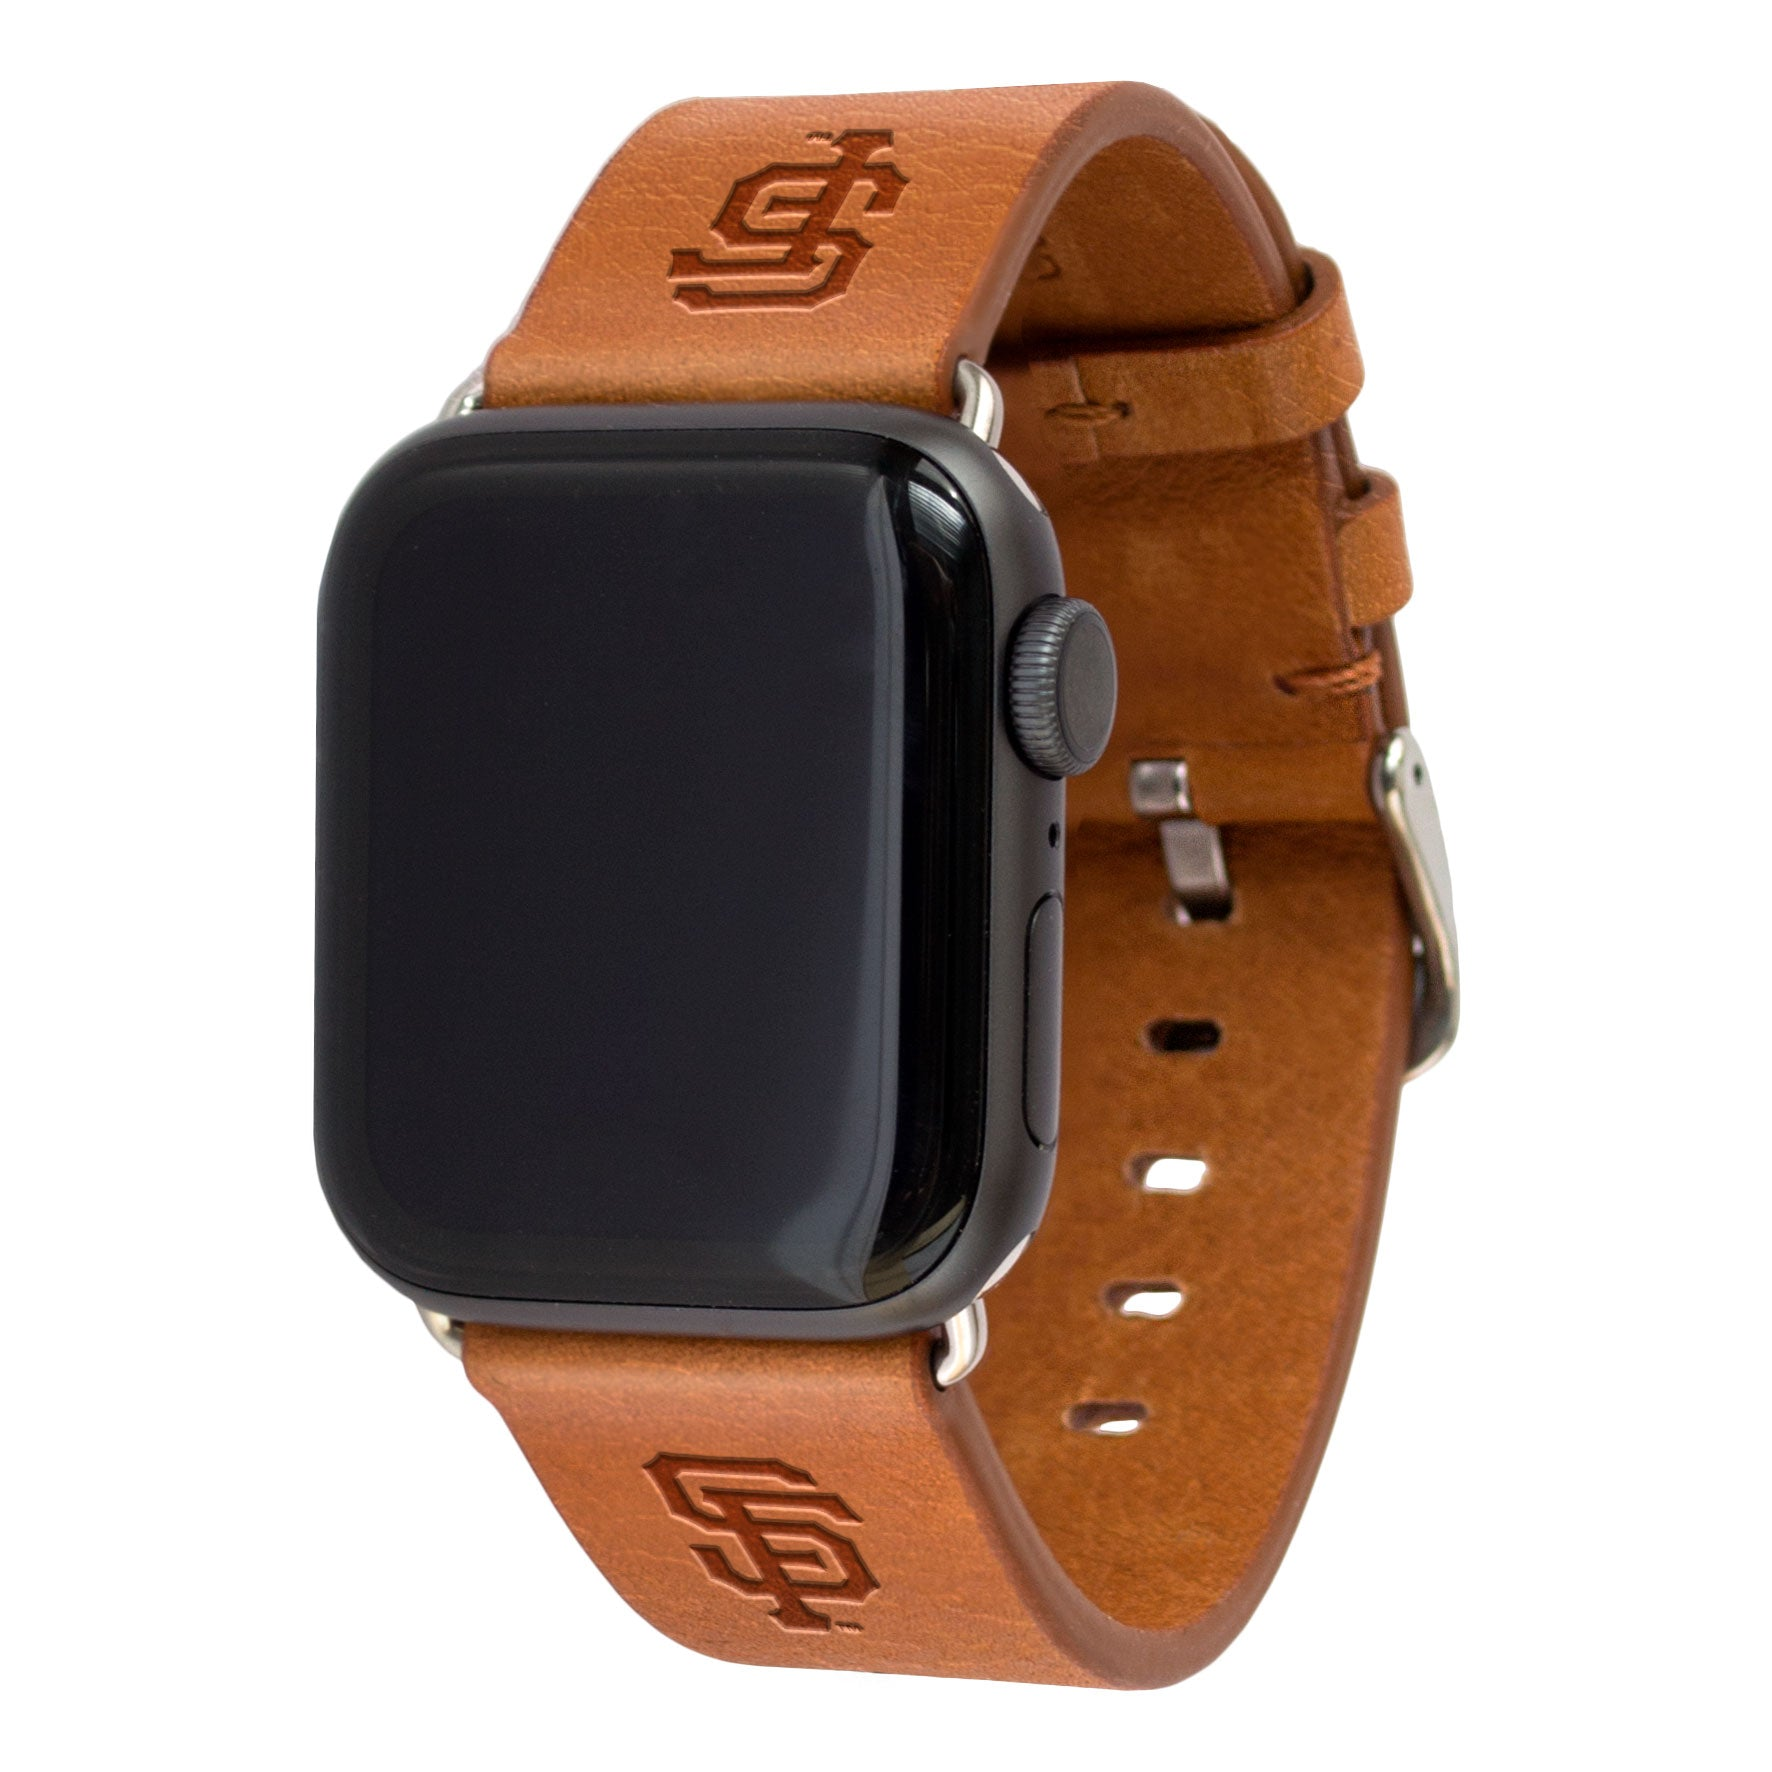 San Francisco Giants Leather Band Compatible with Apple Watch - AffinityBands